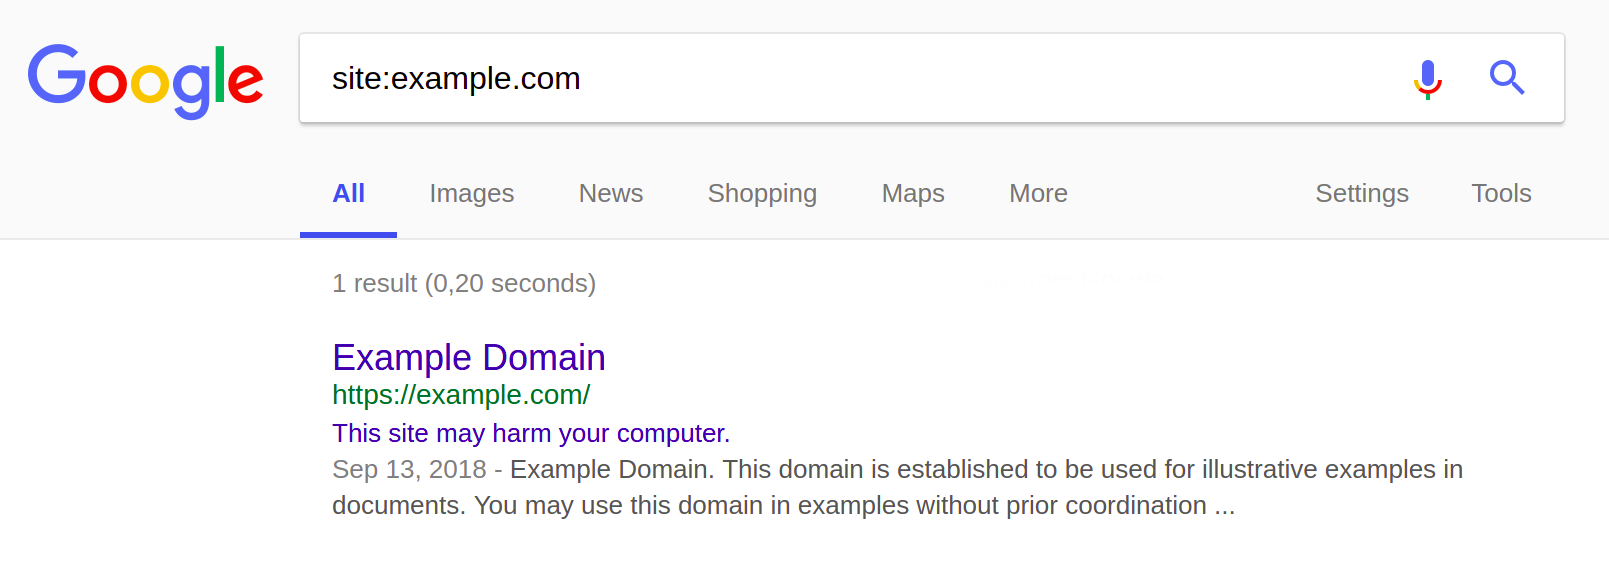 SearchBrothers.com_-_Compromised_Site_SERP_Warning